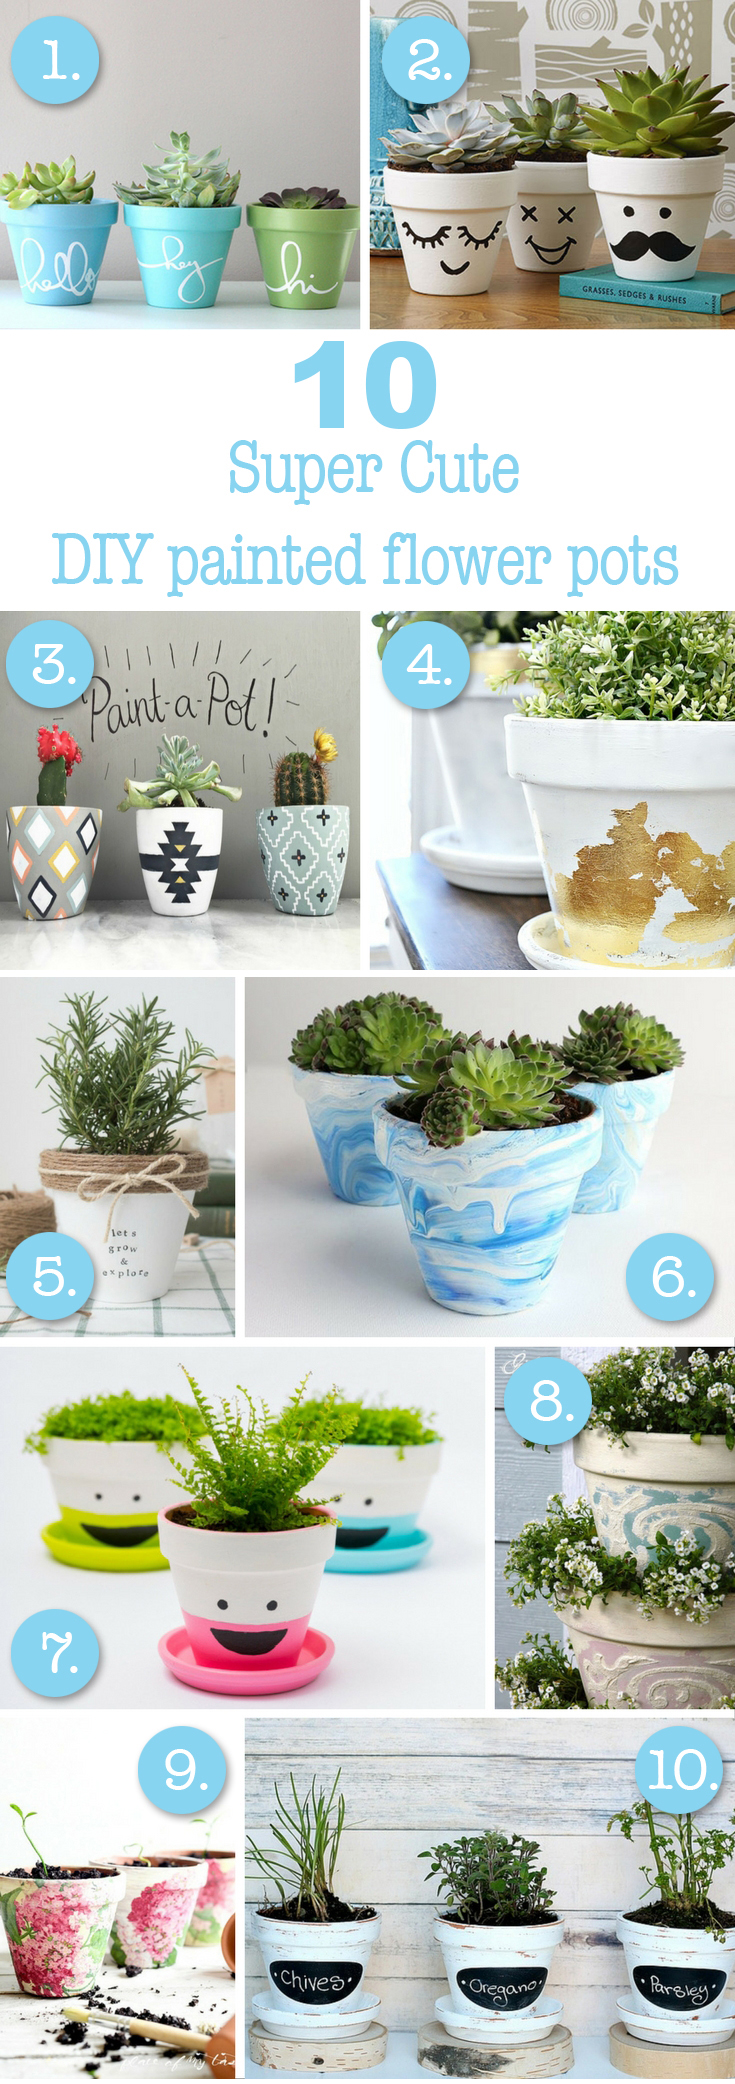 10 super cute DIY painted flower pot ideas